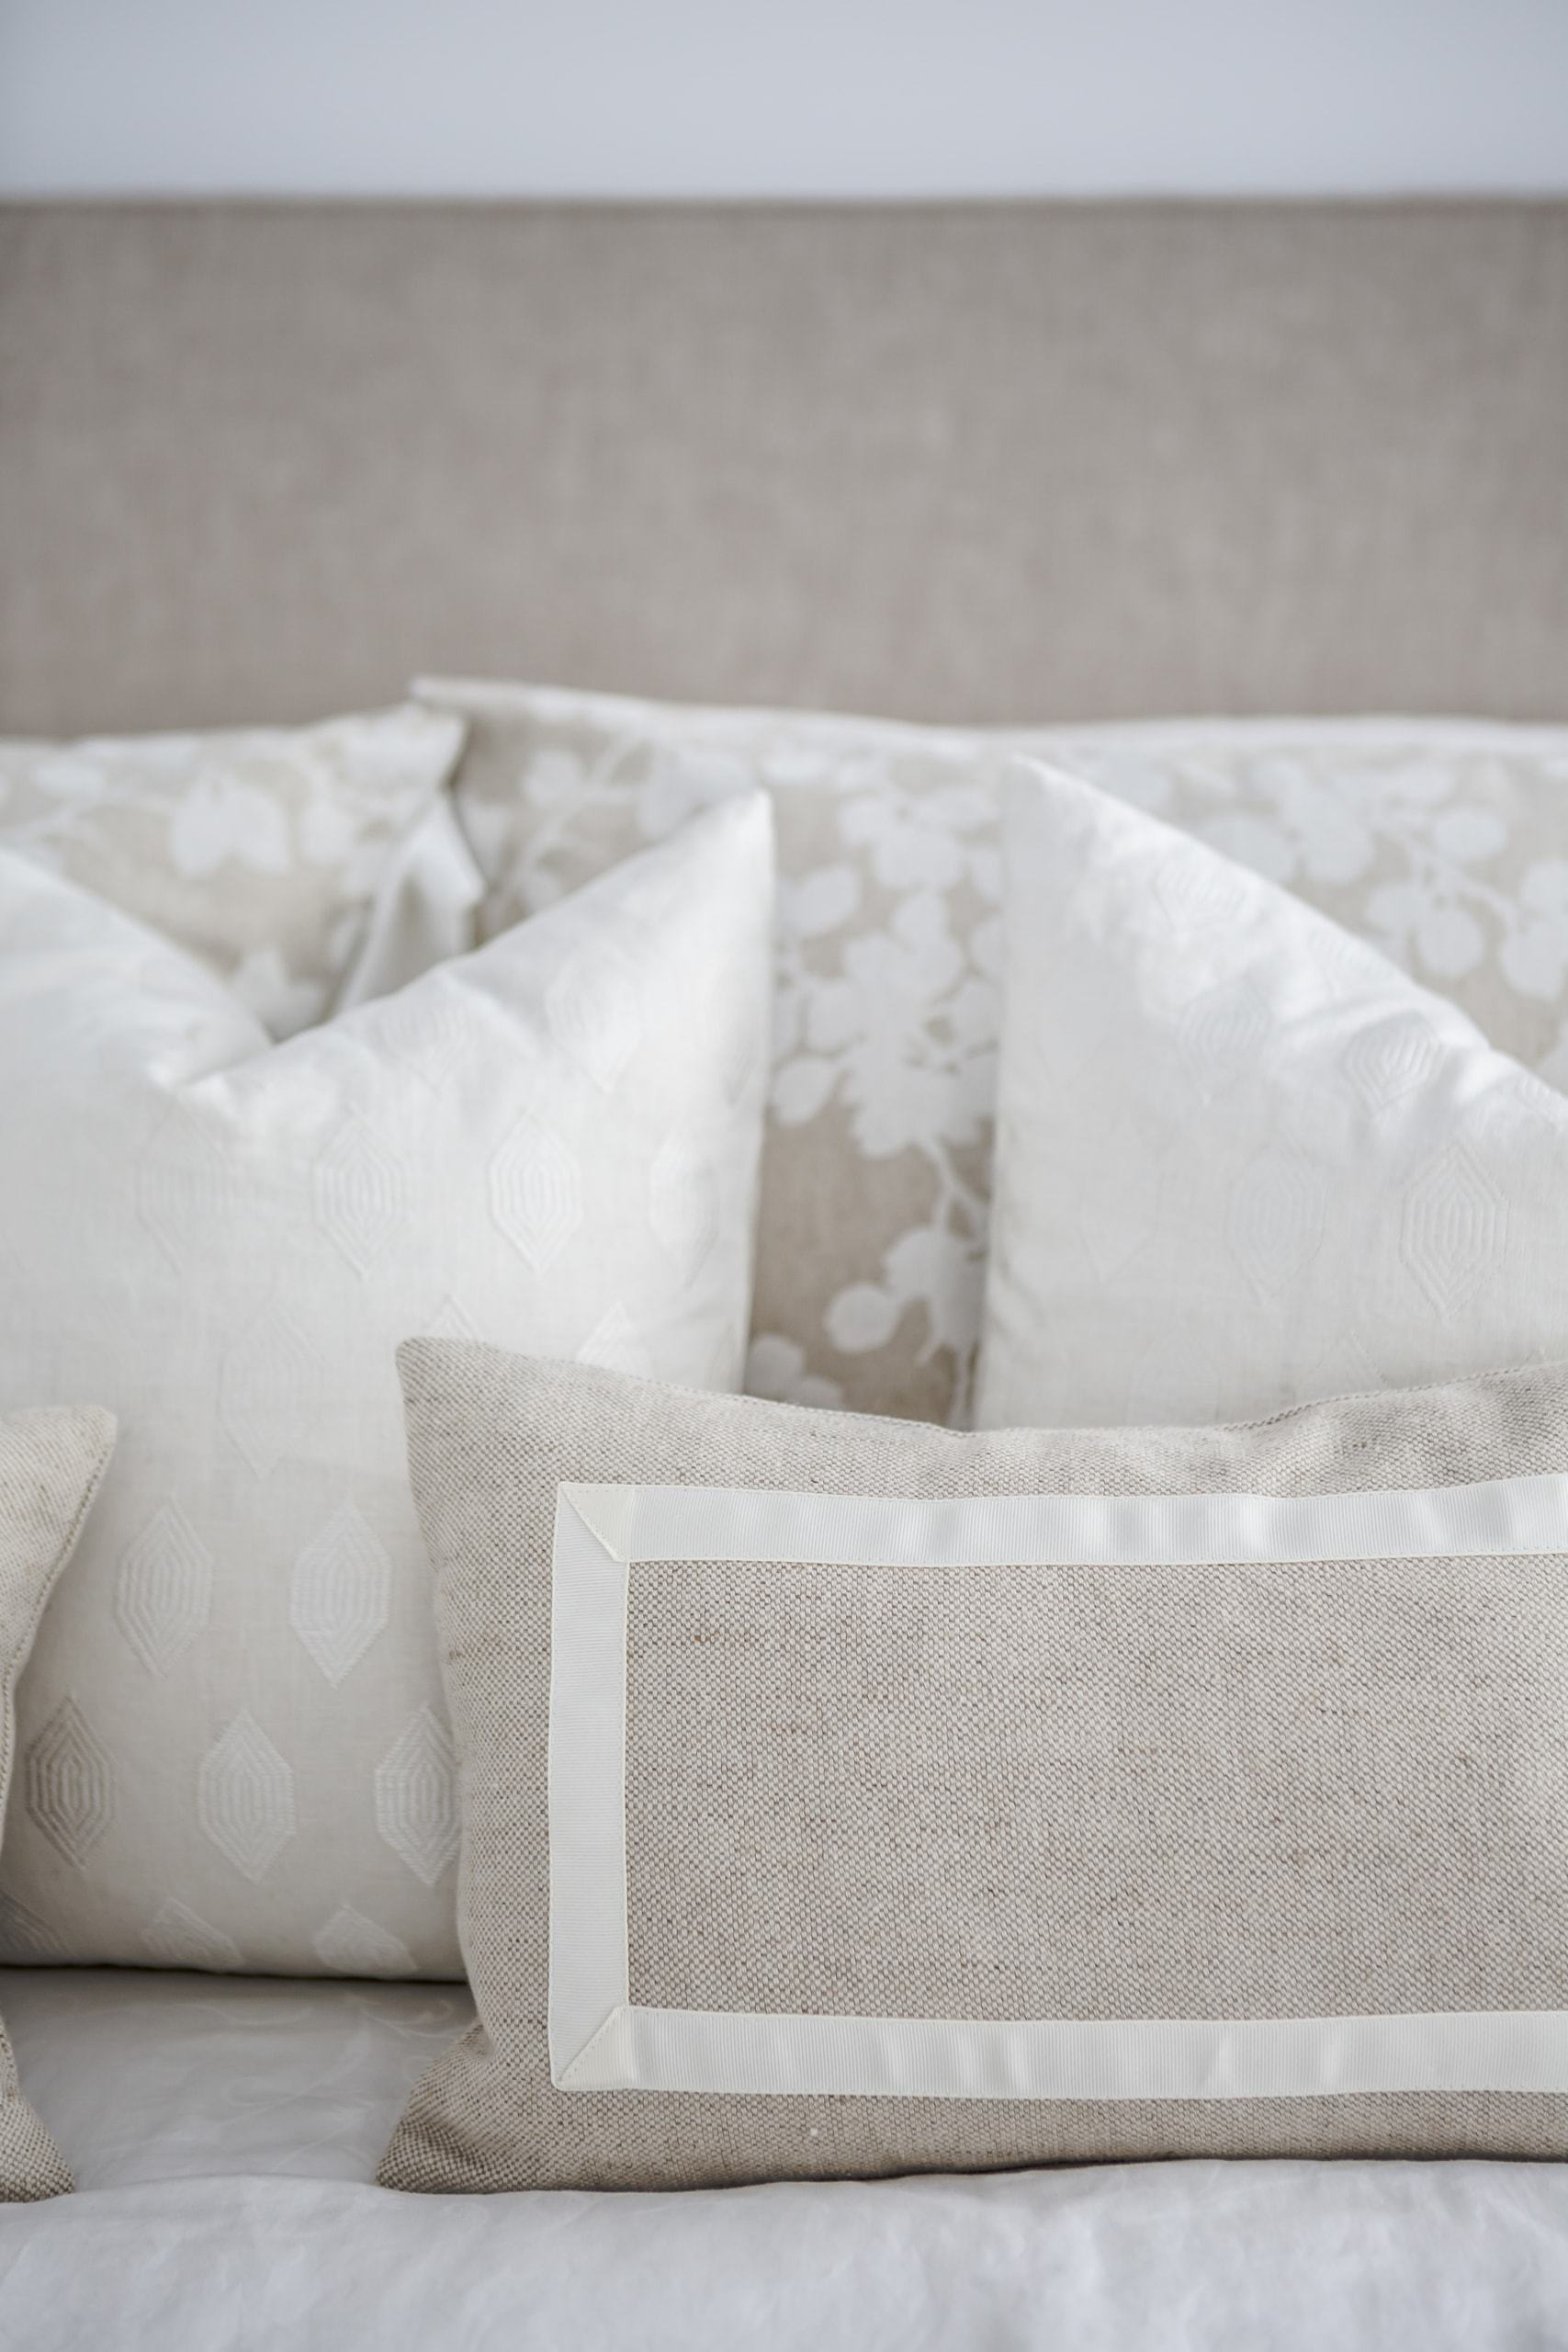 Array of white and beige pillows